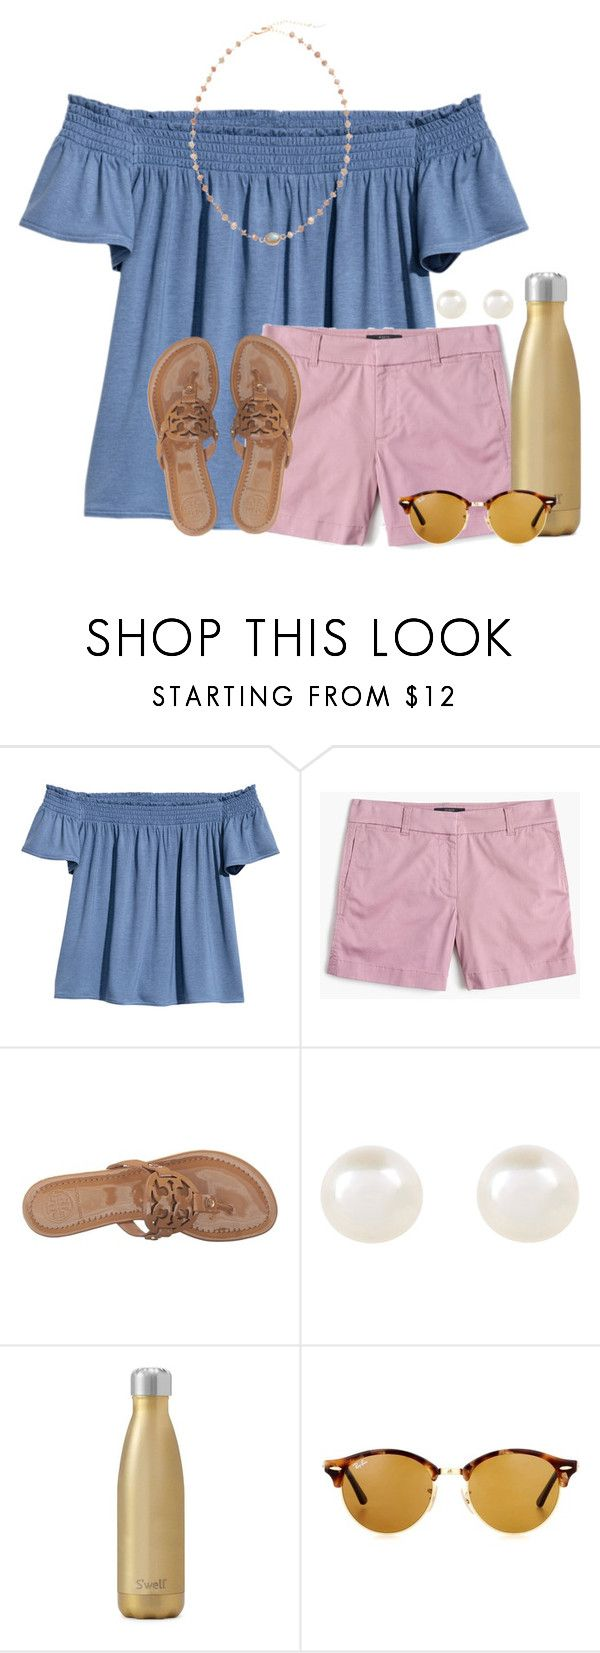 """""""~ pushing back the dark ~"""" by auburnlady ❤ liked on Polyvore featuring H&M, J.Crew, Tory Burch, Accessorize, West Elm, Ray-Ban and Ela Rae"""